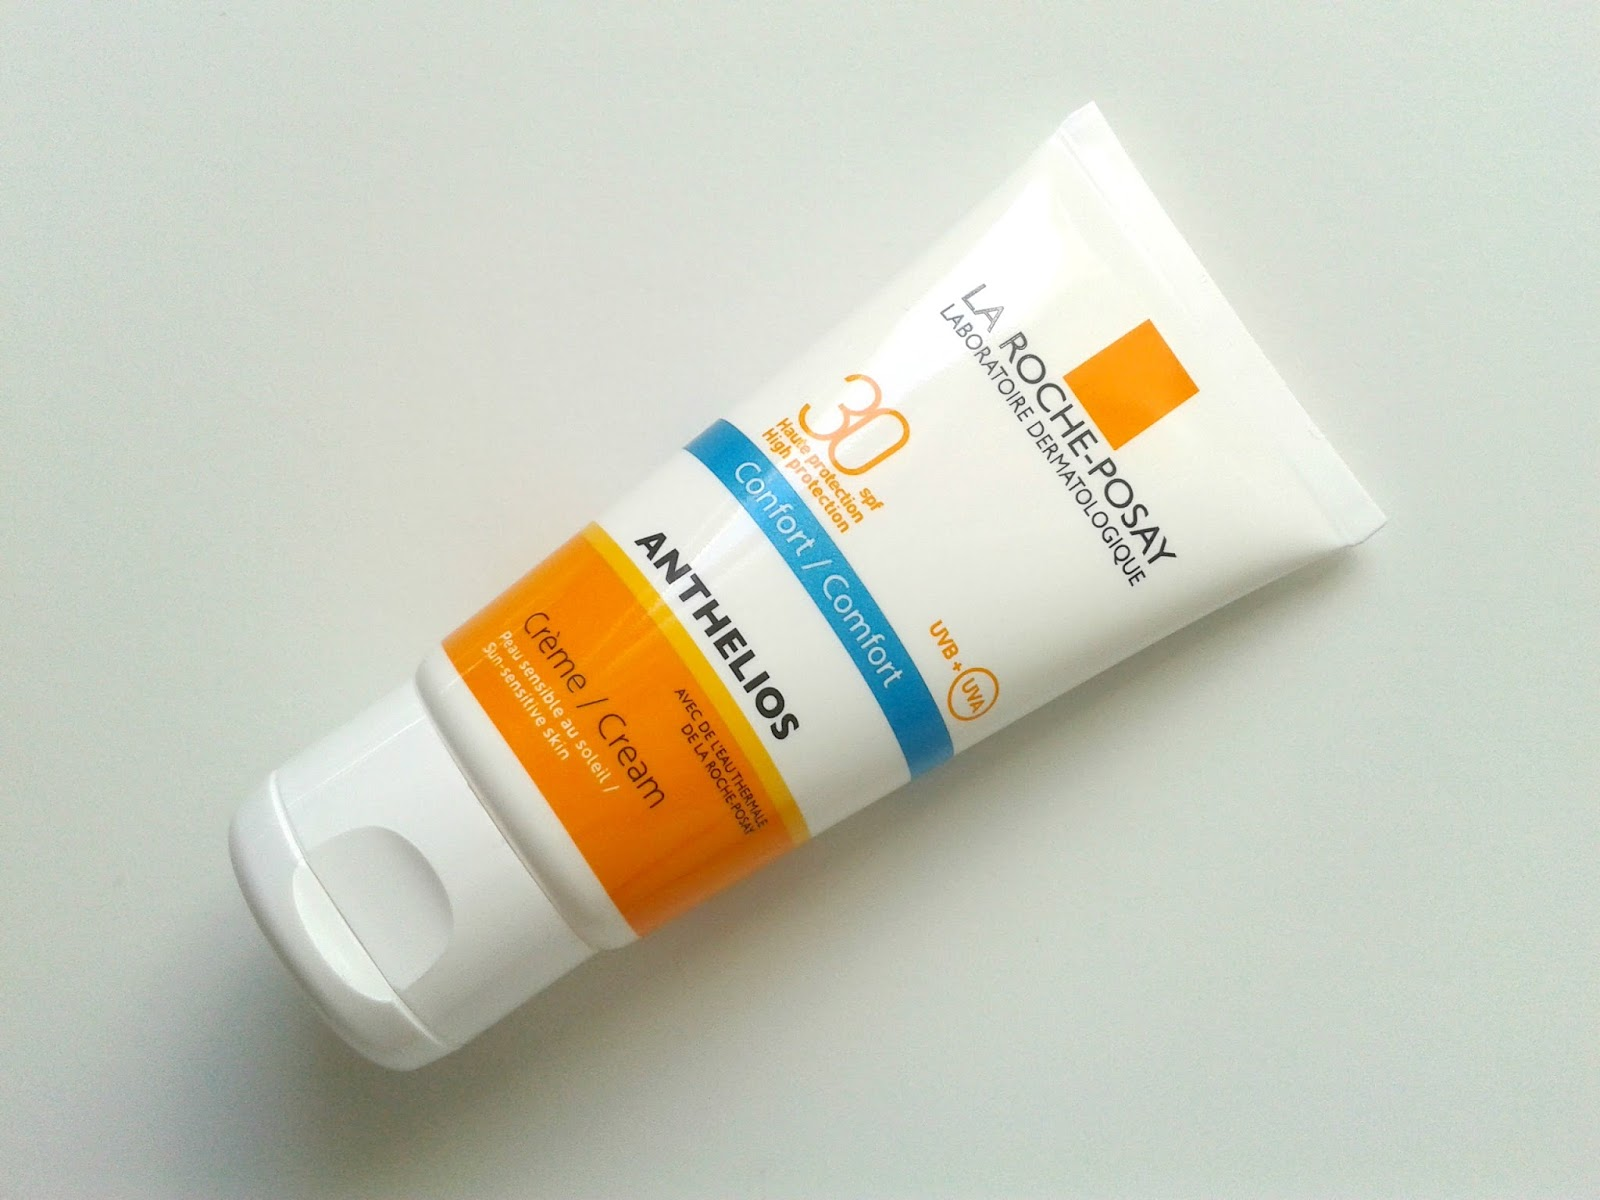 La Roche-Posay Anthelios Face Comfort Cream SPF 30 Beauty Review